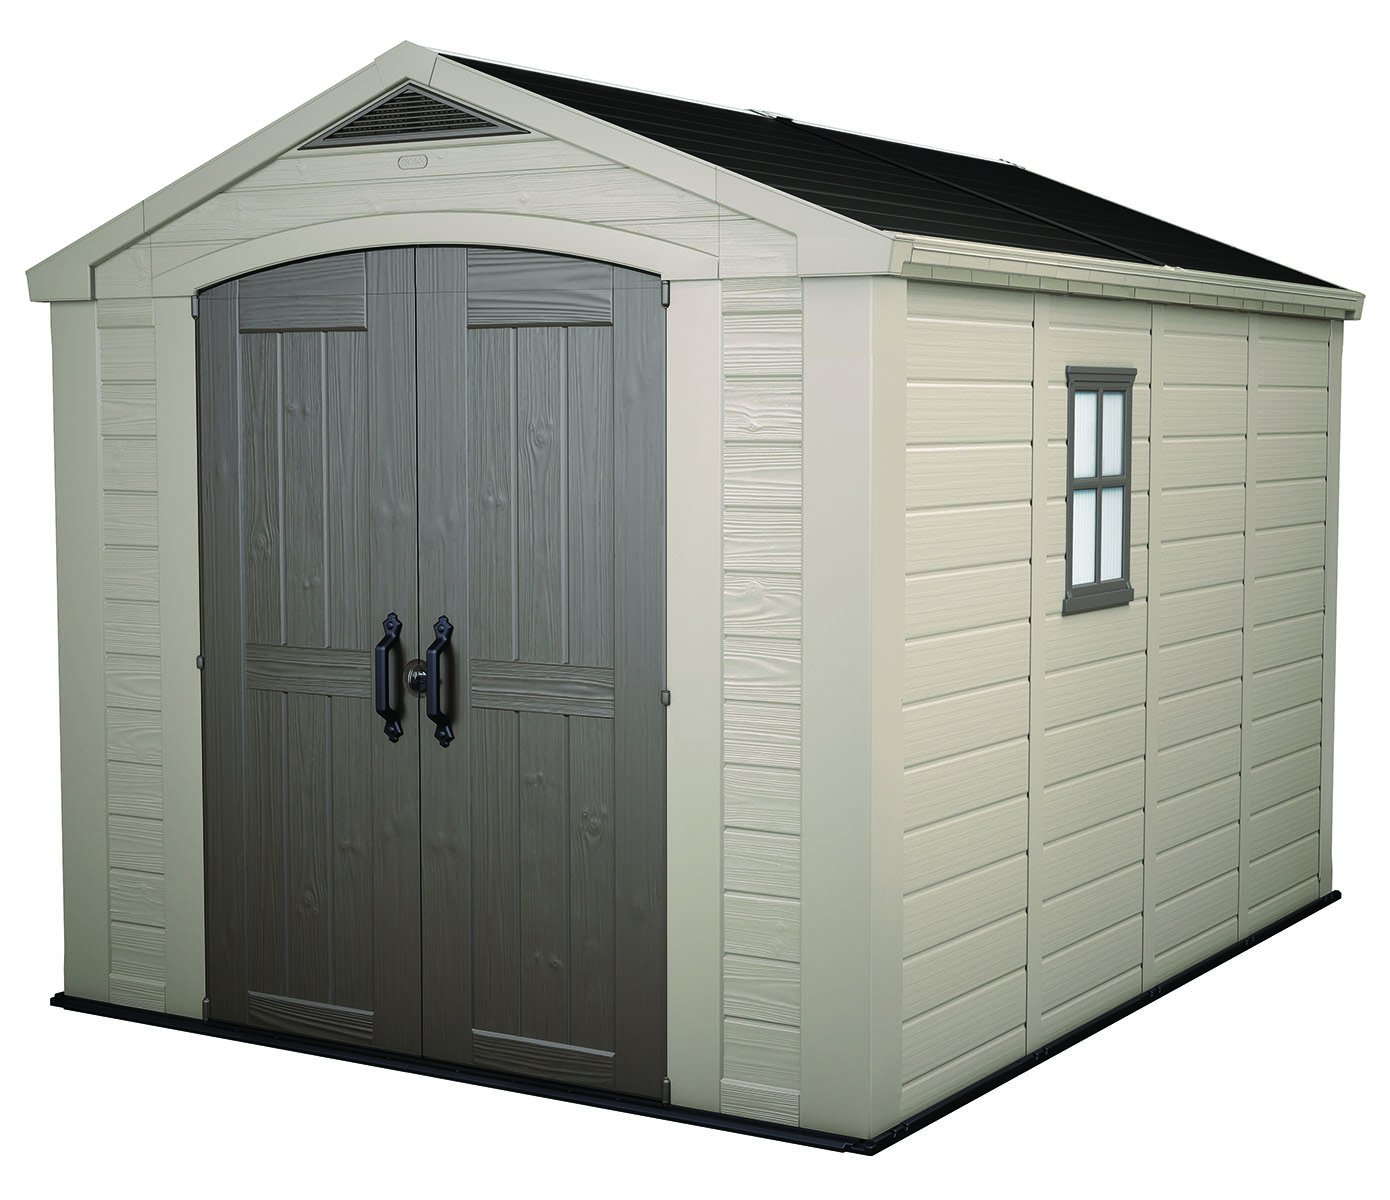 Amazon.com  Keter Factor Large 8 x 11 ft. Resin Outdoor Yard Garden Storage Shed Taupe/Brown  Storage Sheds  Garden u0026 Outdoor  sc 1 st  Amazon.com & Amazon.com : Keter Factor Large 8 x 11 ft. Resin Outdoor Yard Garden ...